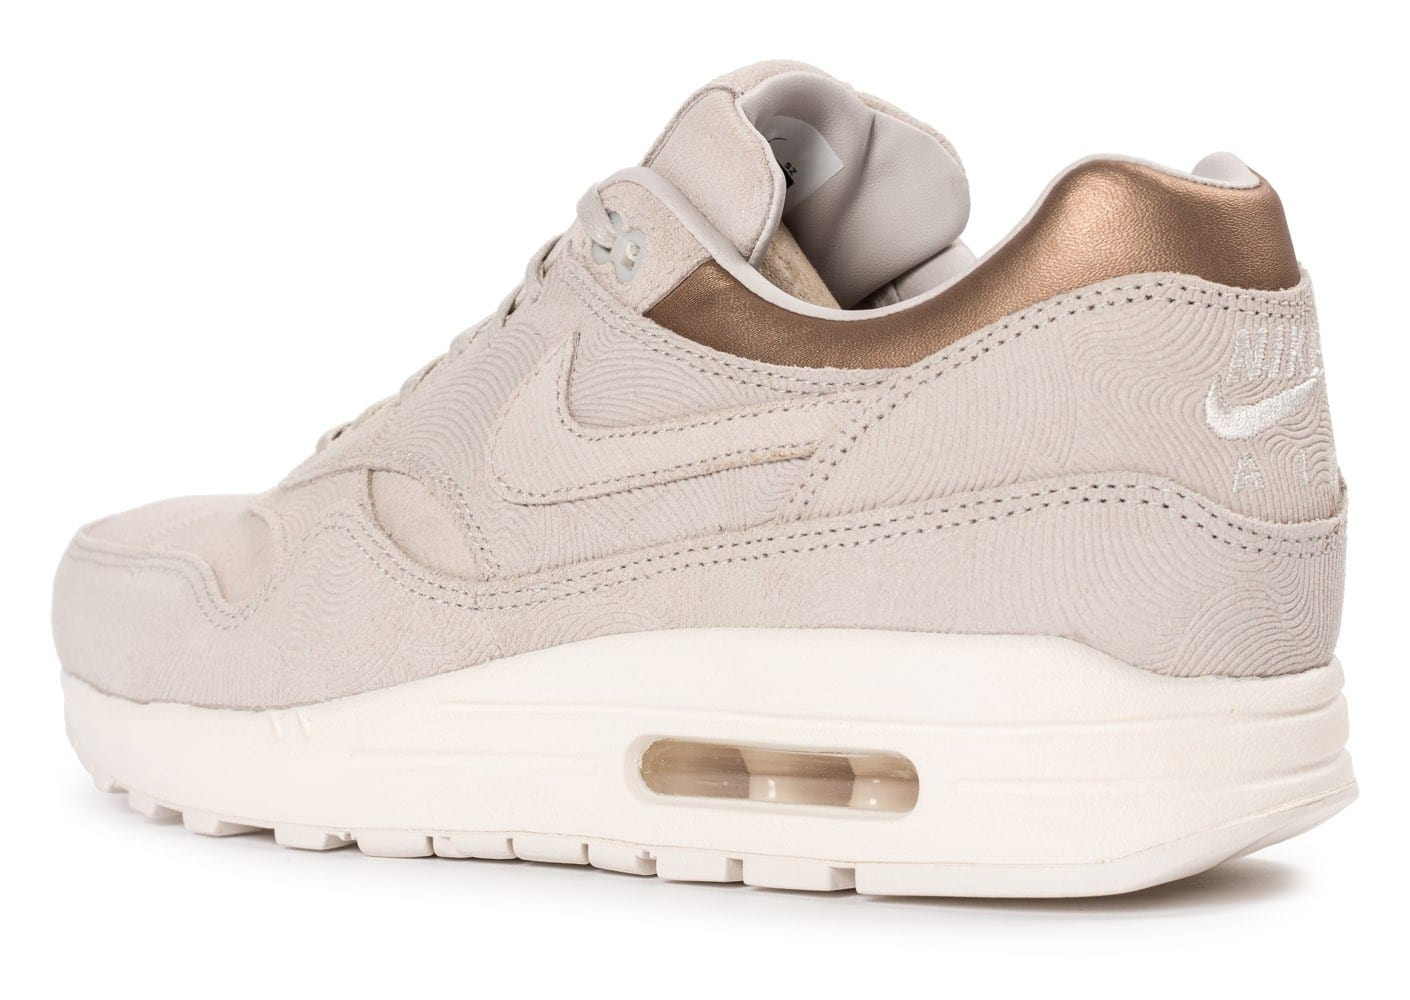 Nike Baskets basses Air Max 1 Premium Beige qUQHf